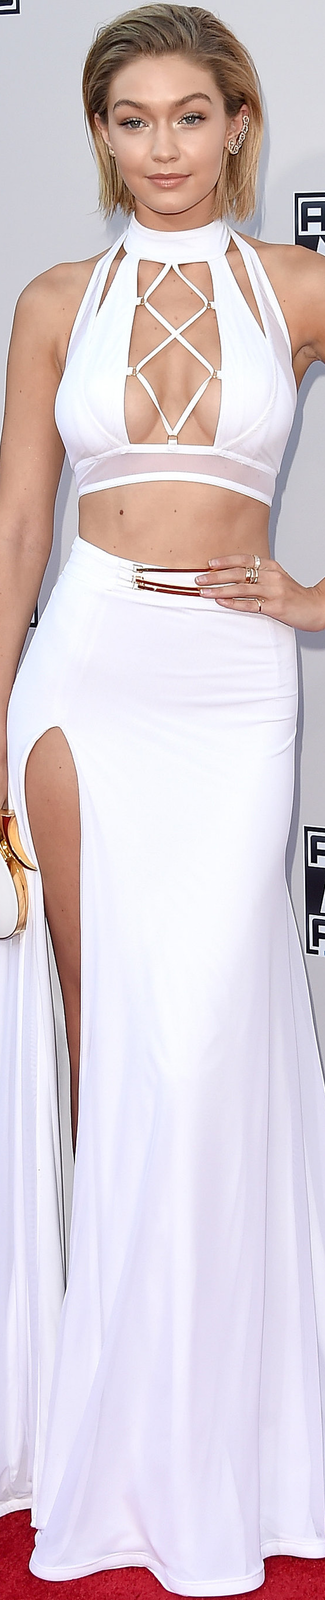 Gigi Hadid 2015 American Music Awards